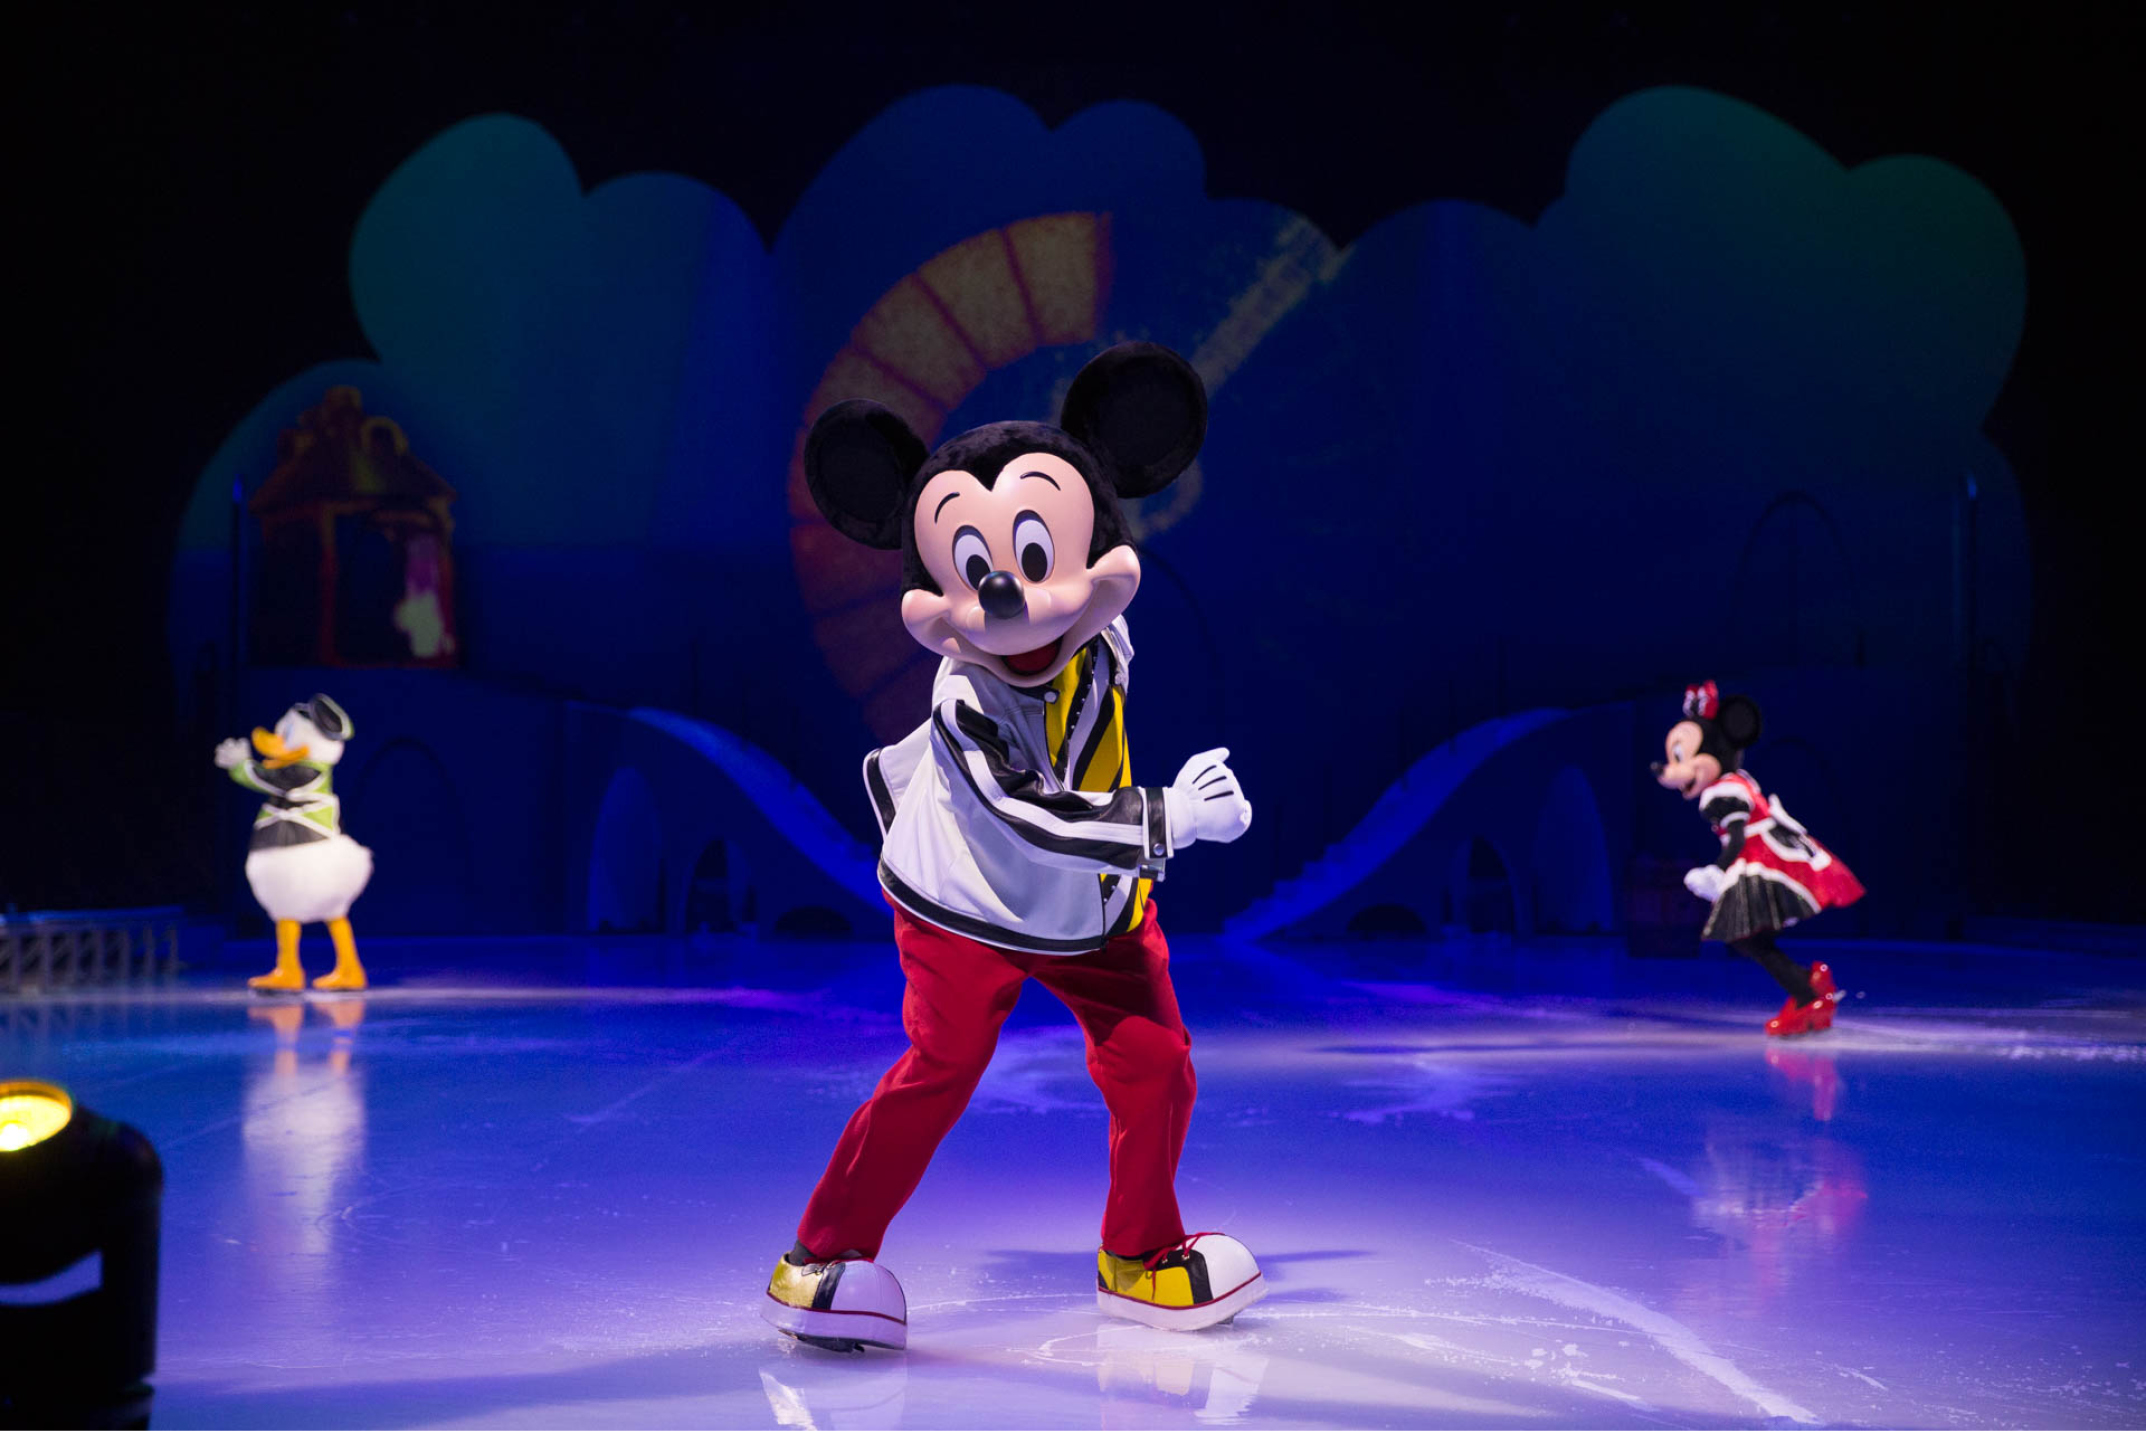 Mickey Mouse, Minnie Mouse and Donald Duck skating on ice